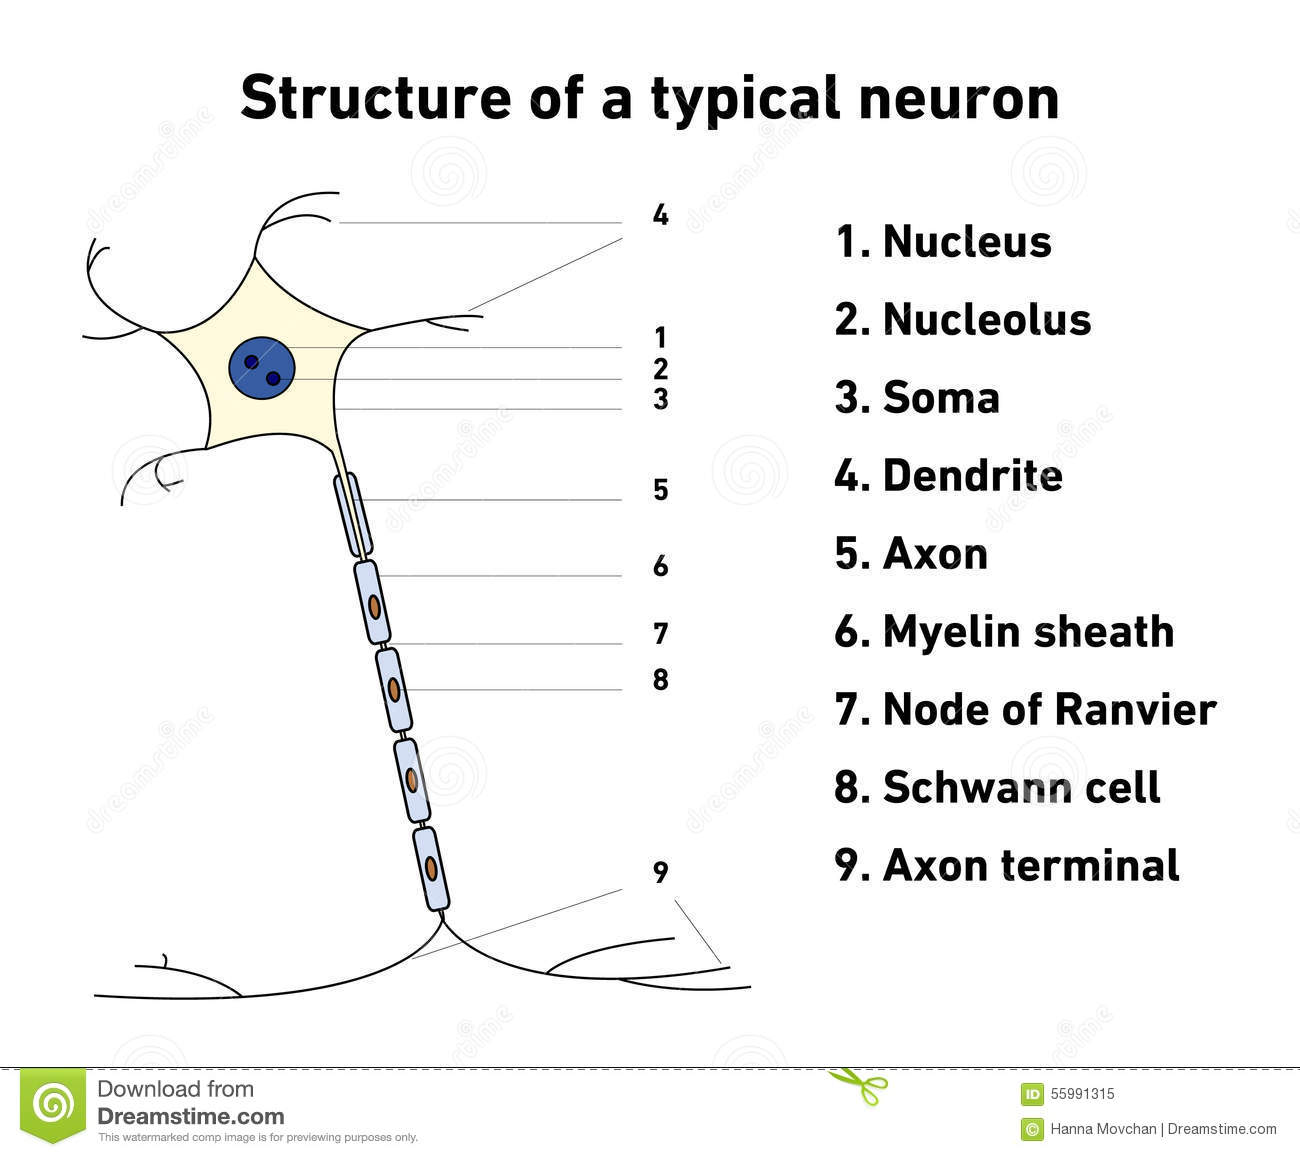 multipolar neuron diagram labeled john deere 318 wiring structure of a typical stock vector illustration